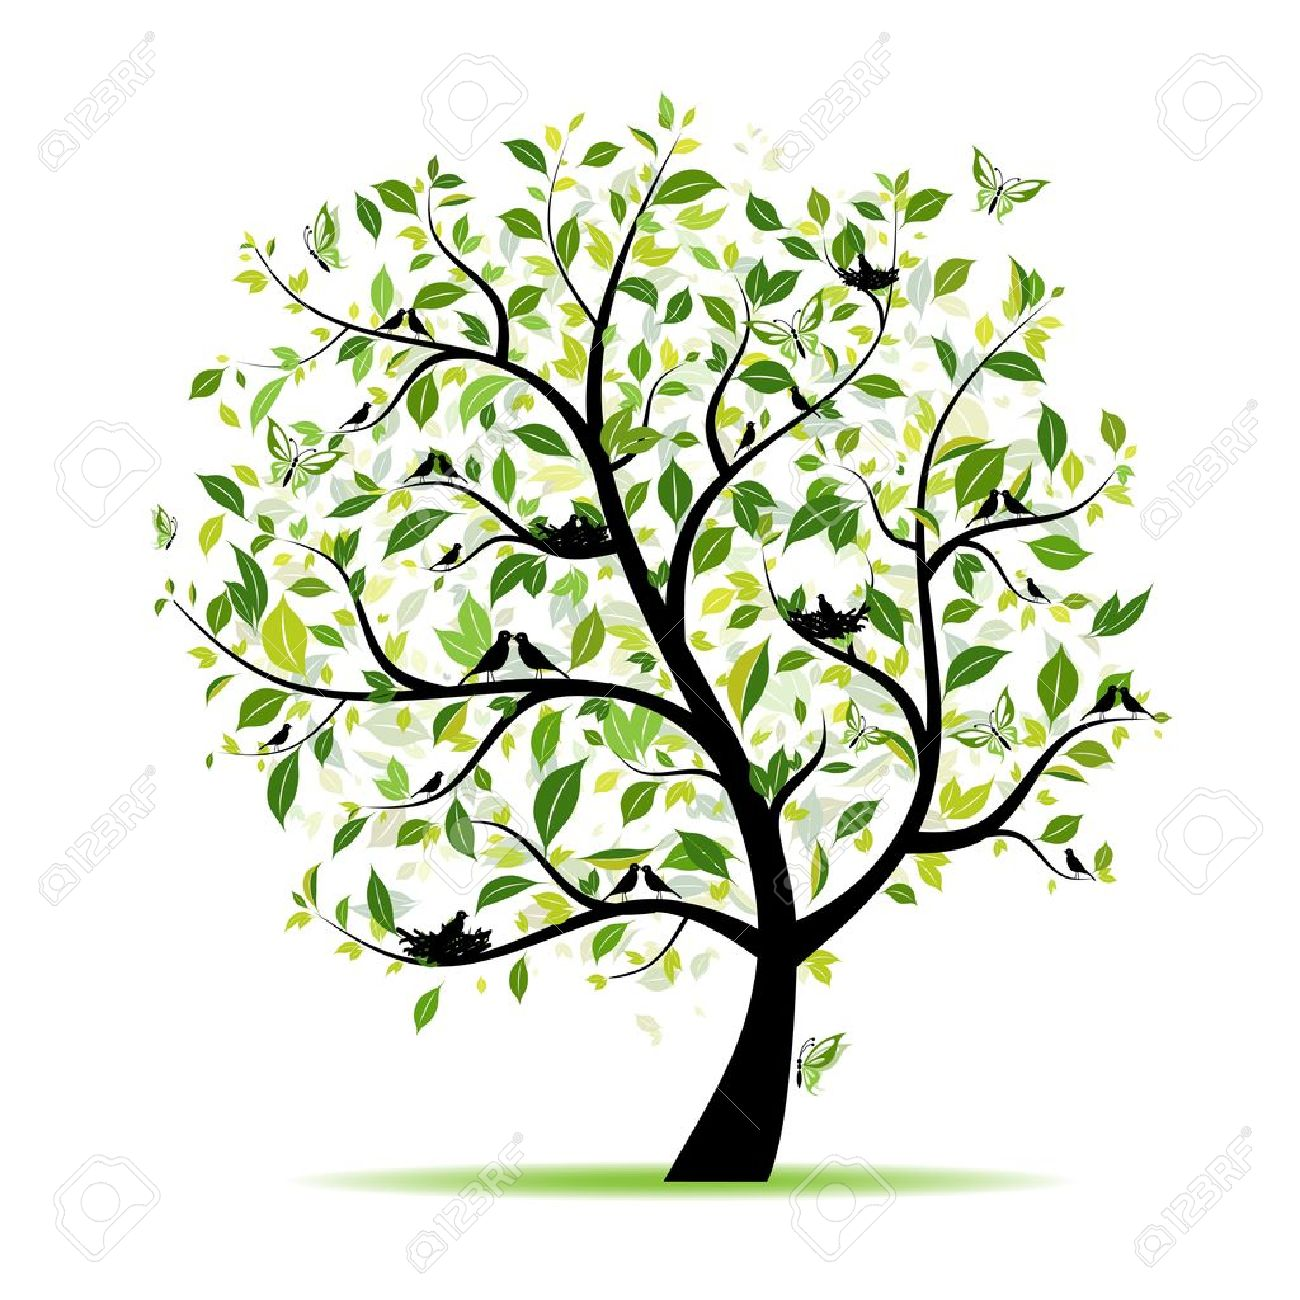 Spring tree green with birds for your design - 9128660